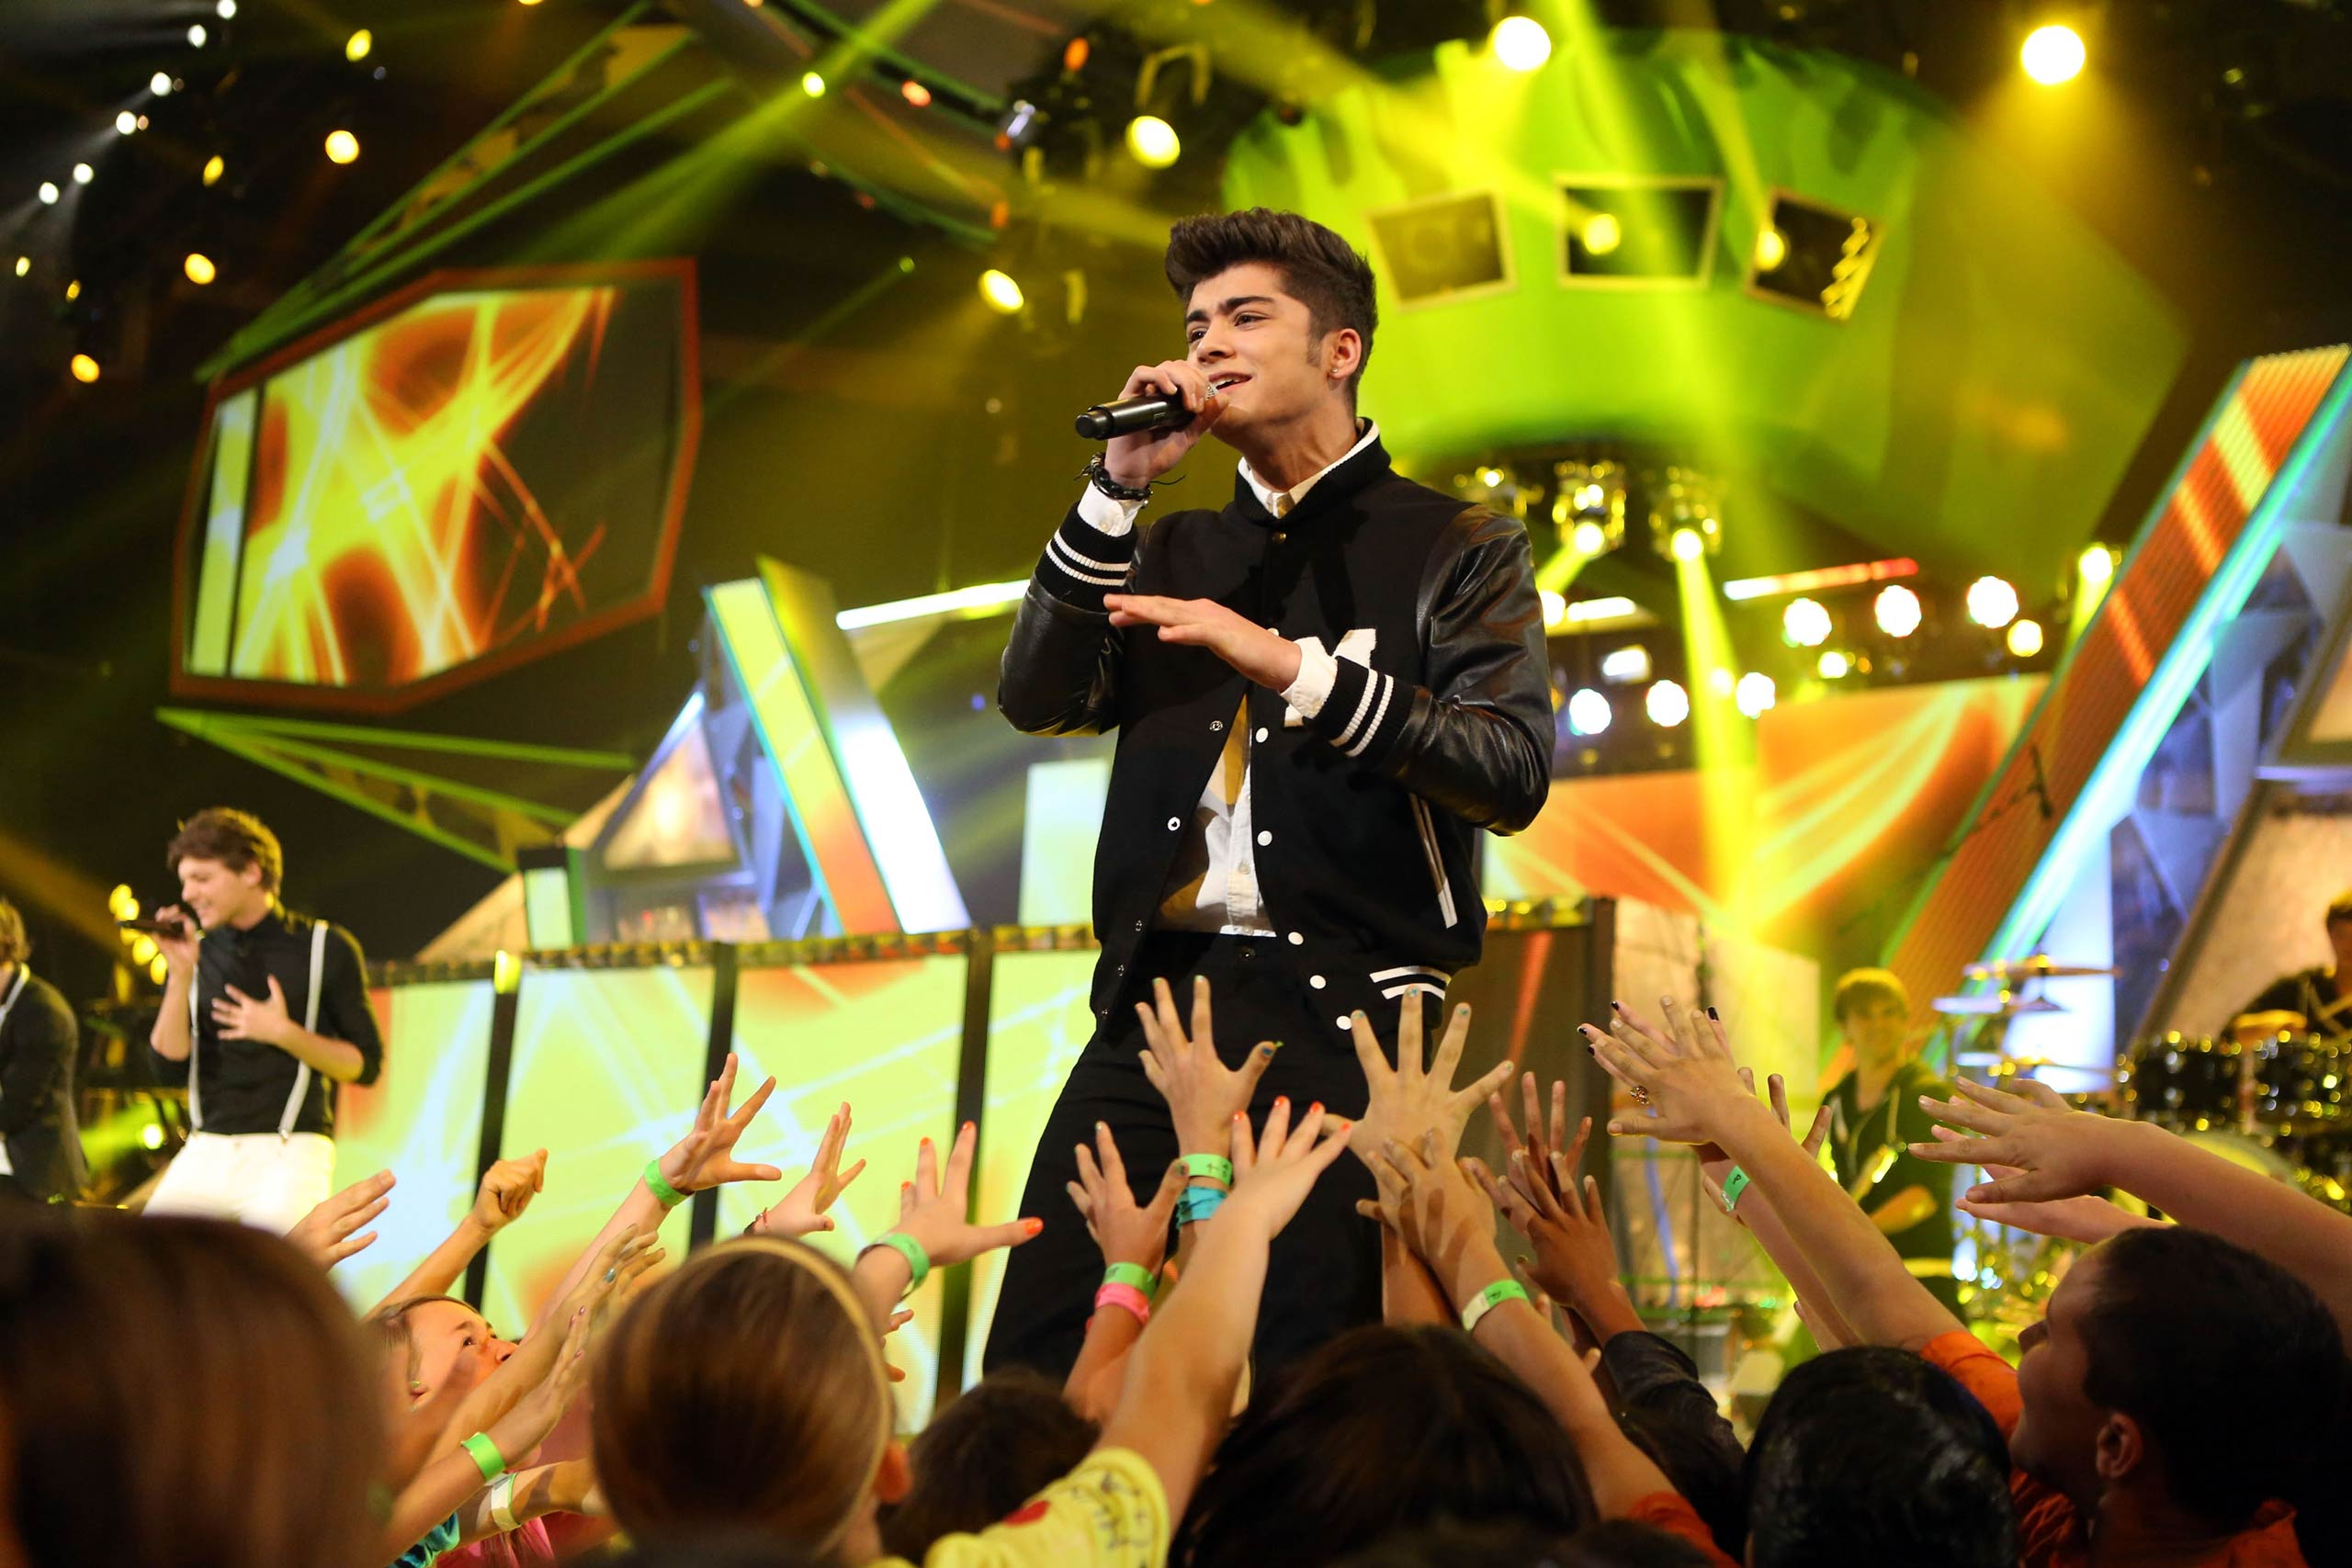 Zayn Malik of One Direction performs at Nickelodeon's 25th Annual Kids' Choice Awards held at Galen Center in Los Angeles, Calif. in 2012.